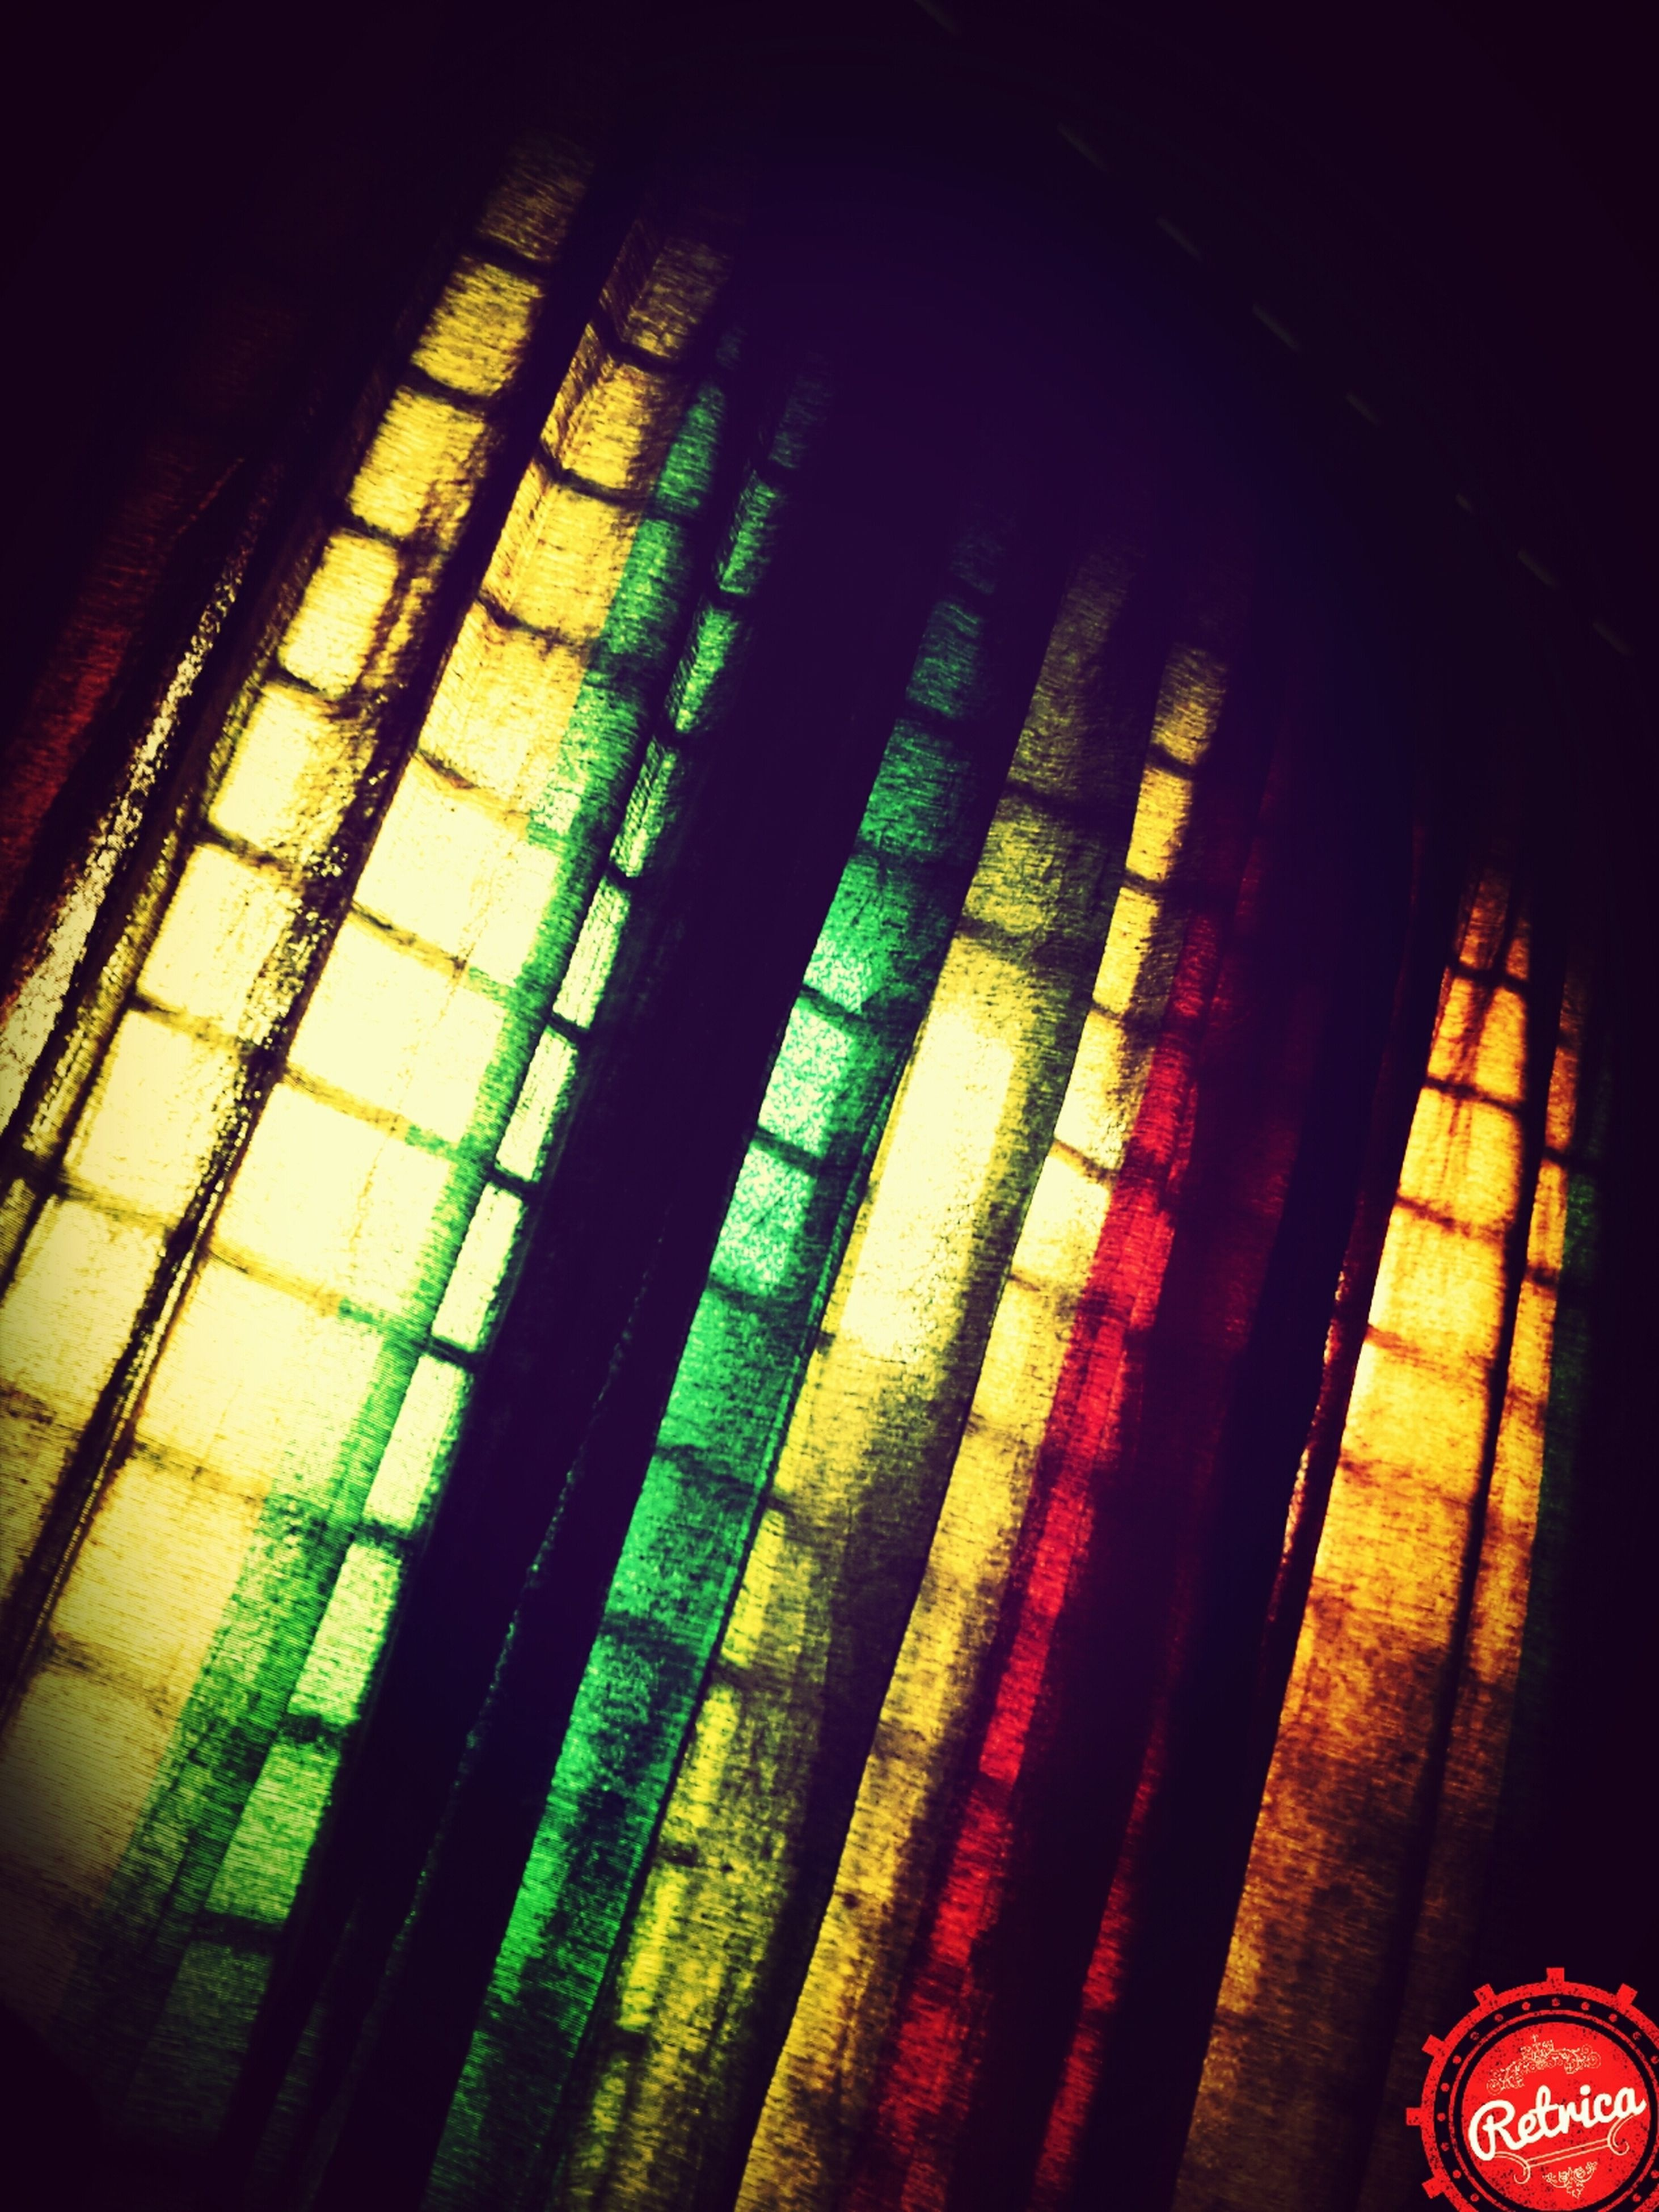 indoors, pattern, illuminated, design, decoration, home interior, no people, window, full frame, still life, hanging, architecture, ceiling, close-up, multi colored, built structure, backgrounds, textile, low angle view, night